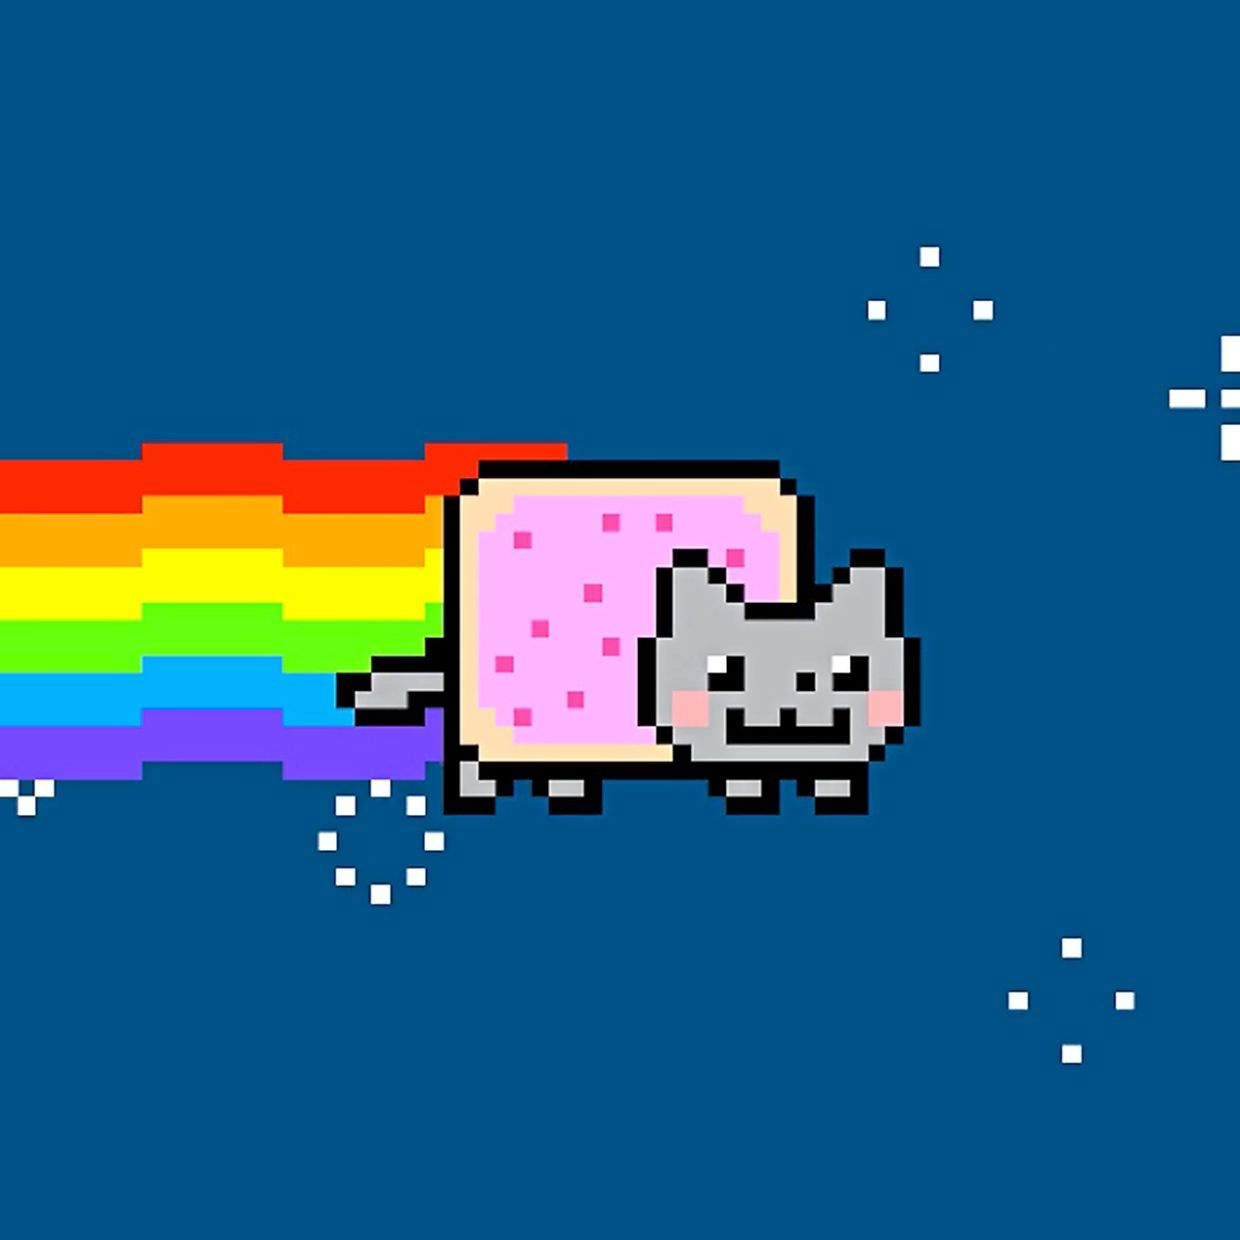 Last February, a NFT for iconic GIF Nyan Cat fetched almost US$600,000 (RM2.4mil) in an online action. — AFP Relaxnews